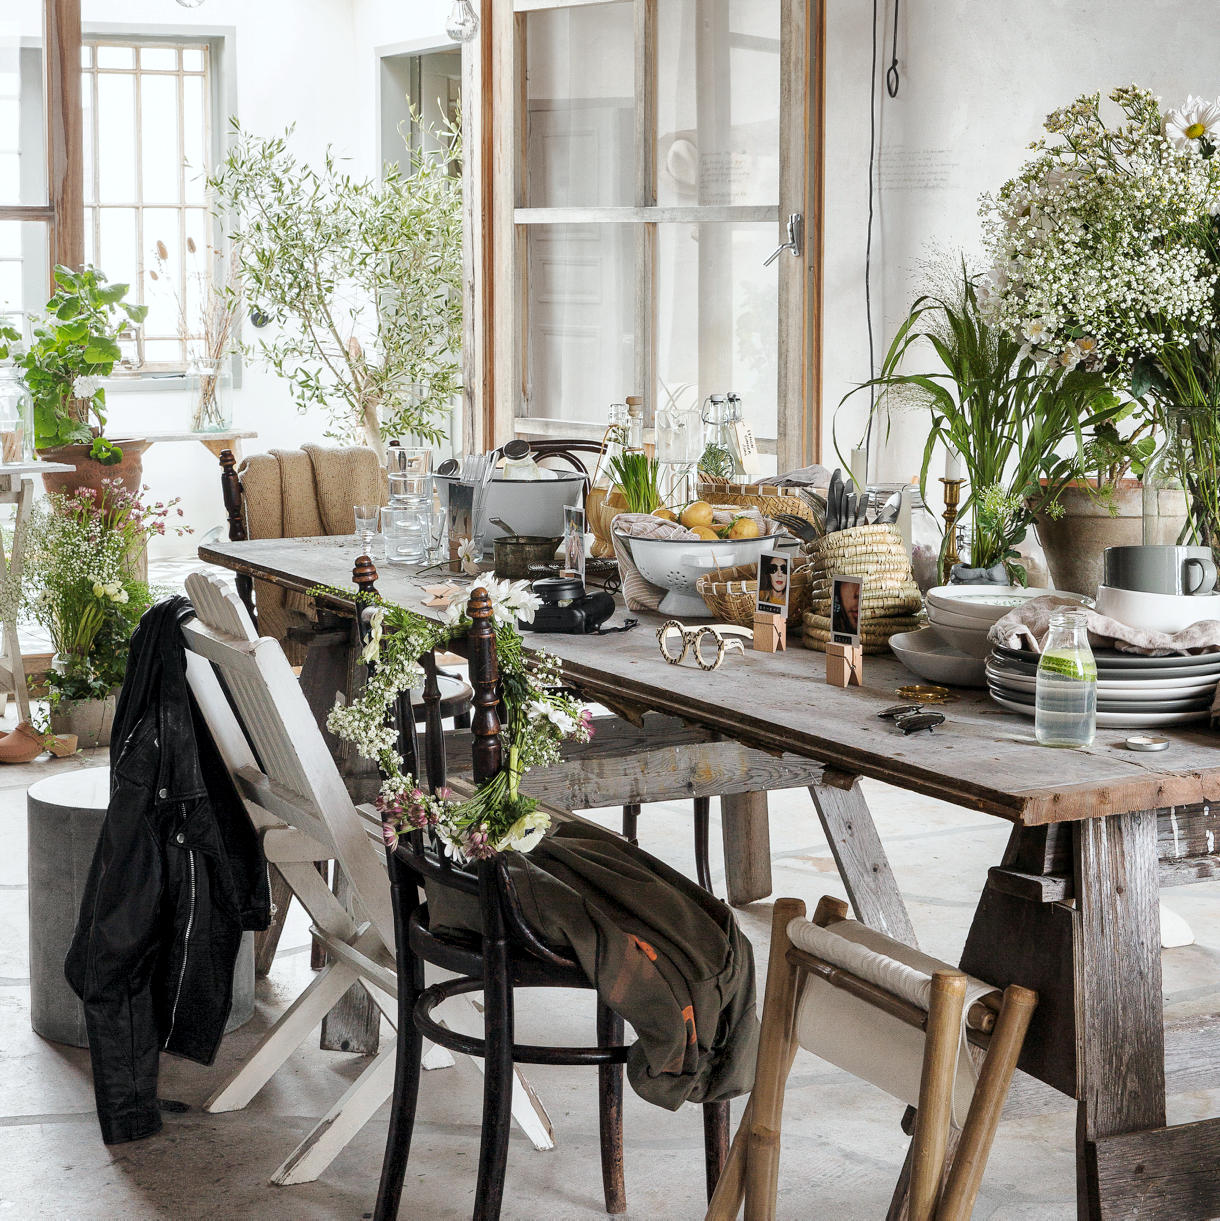 Cuisine Campagne Chic 8 Idees Deco A Imiter 2019 Maison Creative